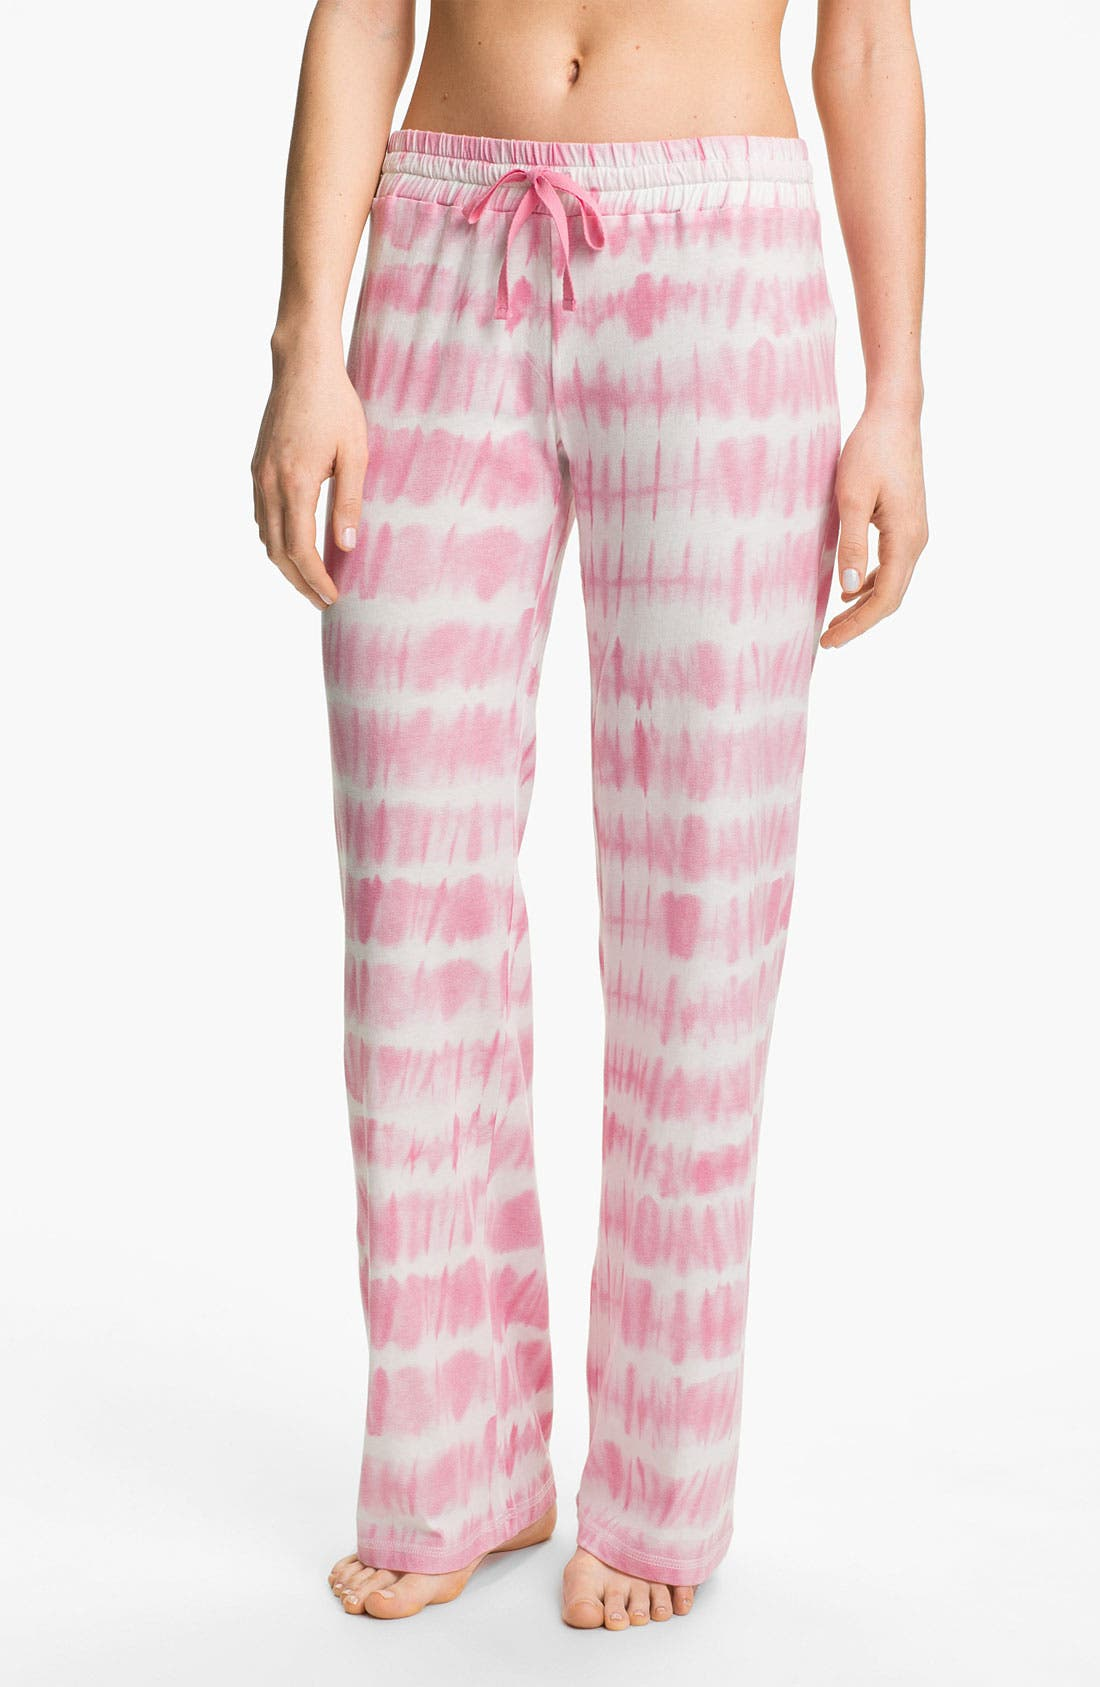 Alternate Image 1 Selected - PJ Salvage 'Pink Dyes' Pajama Pants